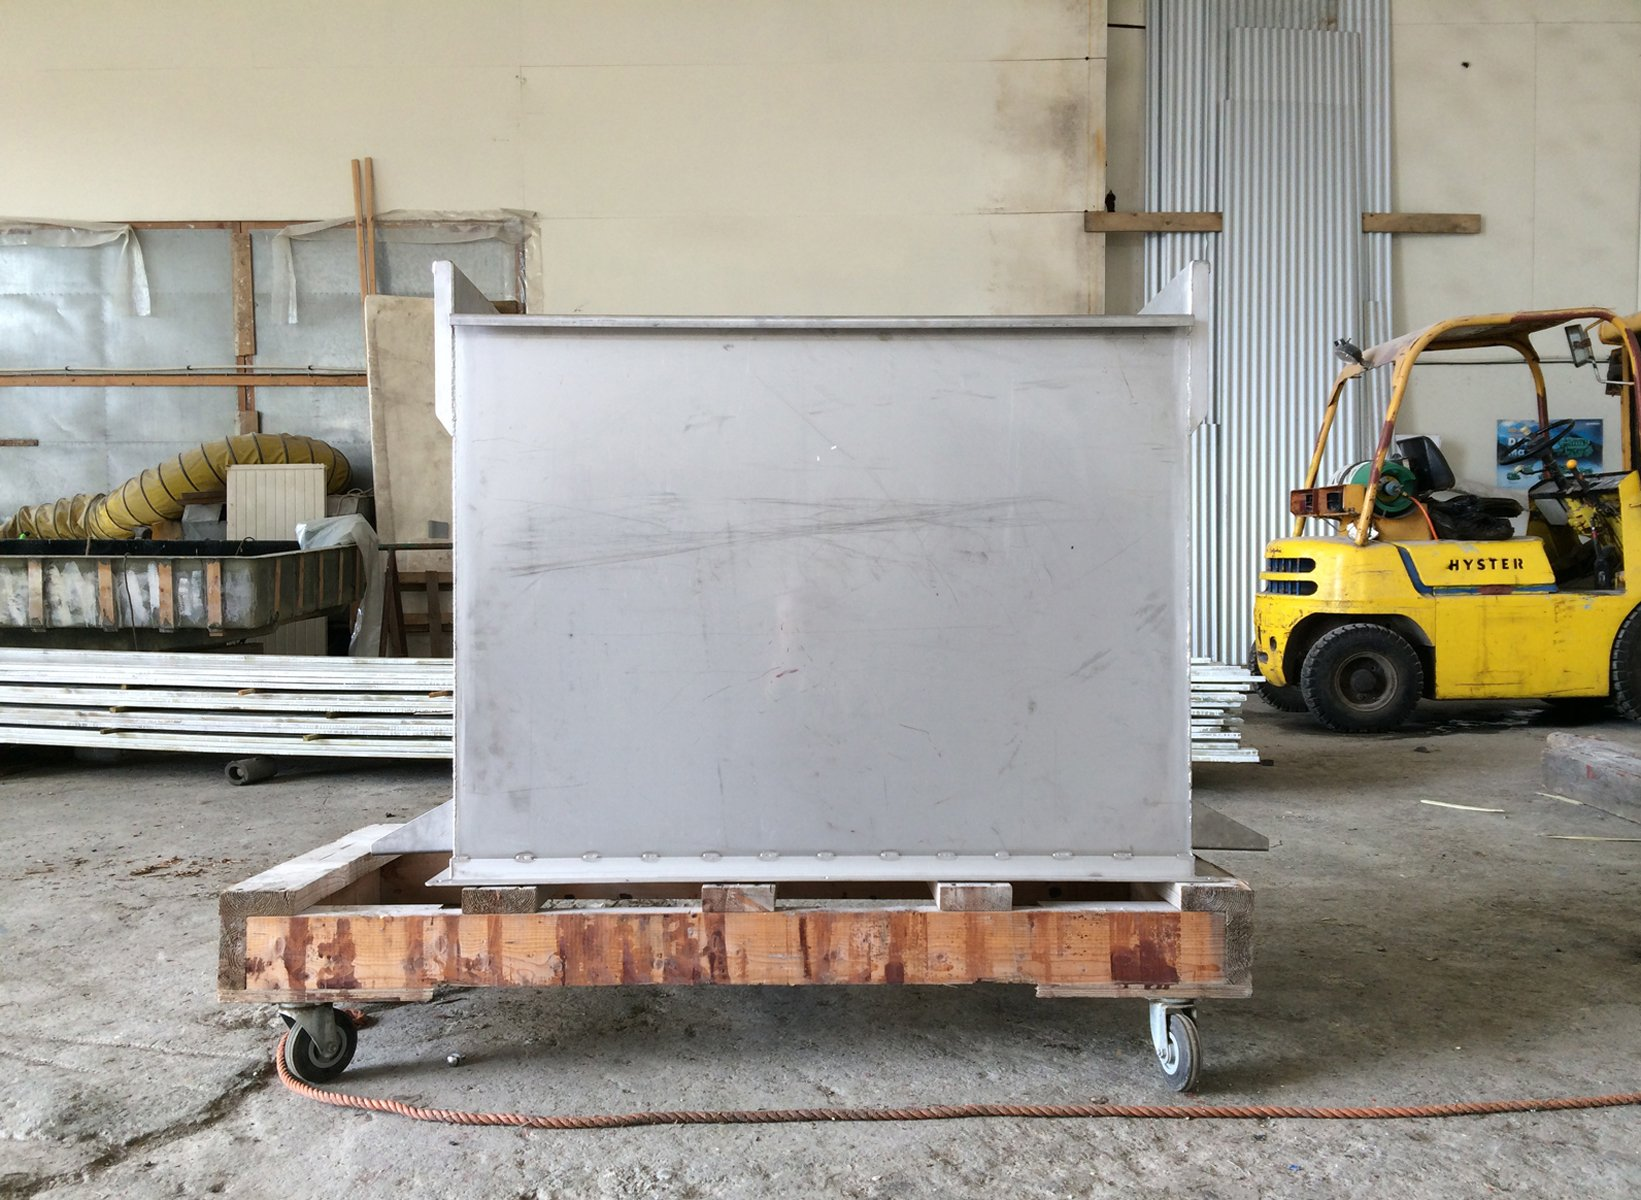 A bare aluminum box sits on a pallet dolly in a warehouse with a yellow forklift.